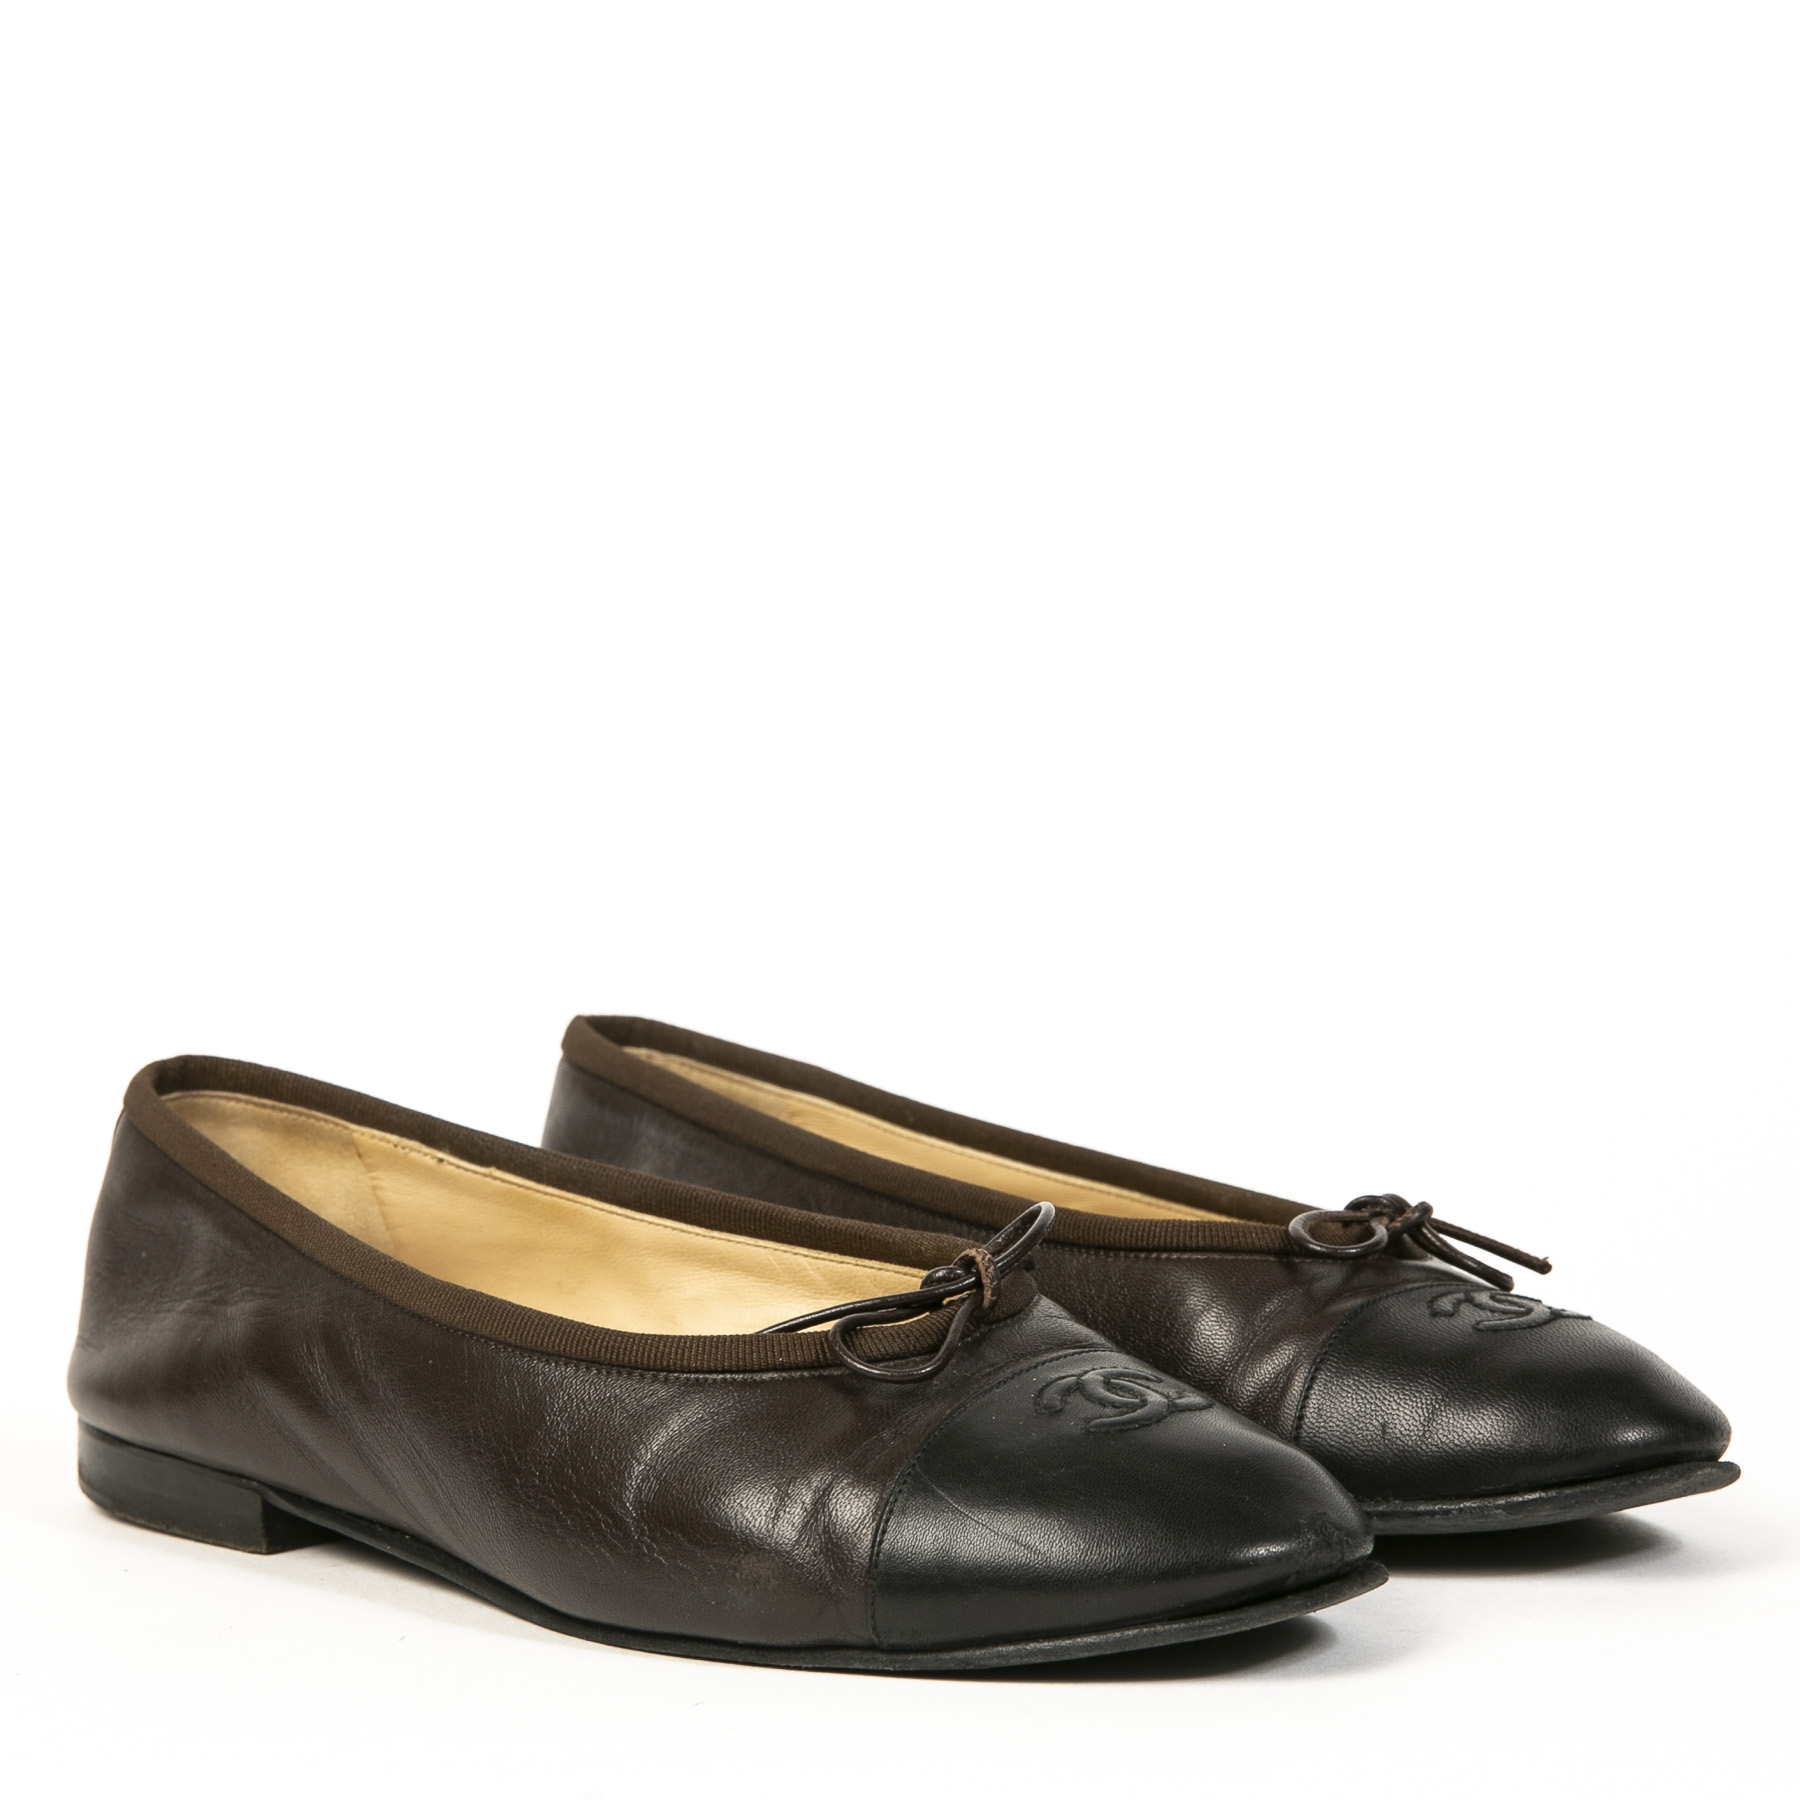 Authentieke tweedehands vintage Chanel Brown Bow Ballet Flats koop online webshop LabelLOV